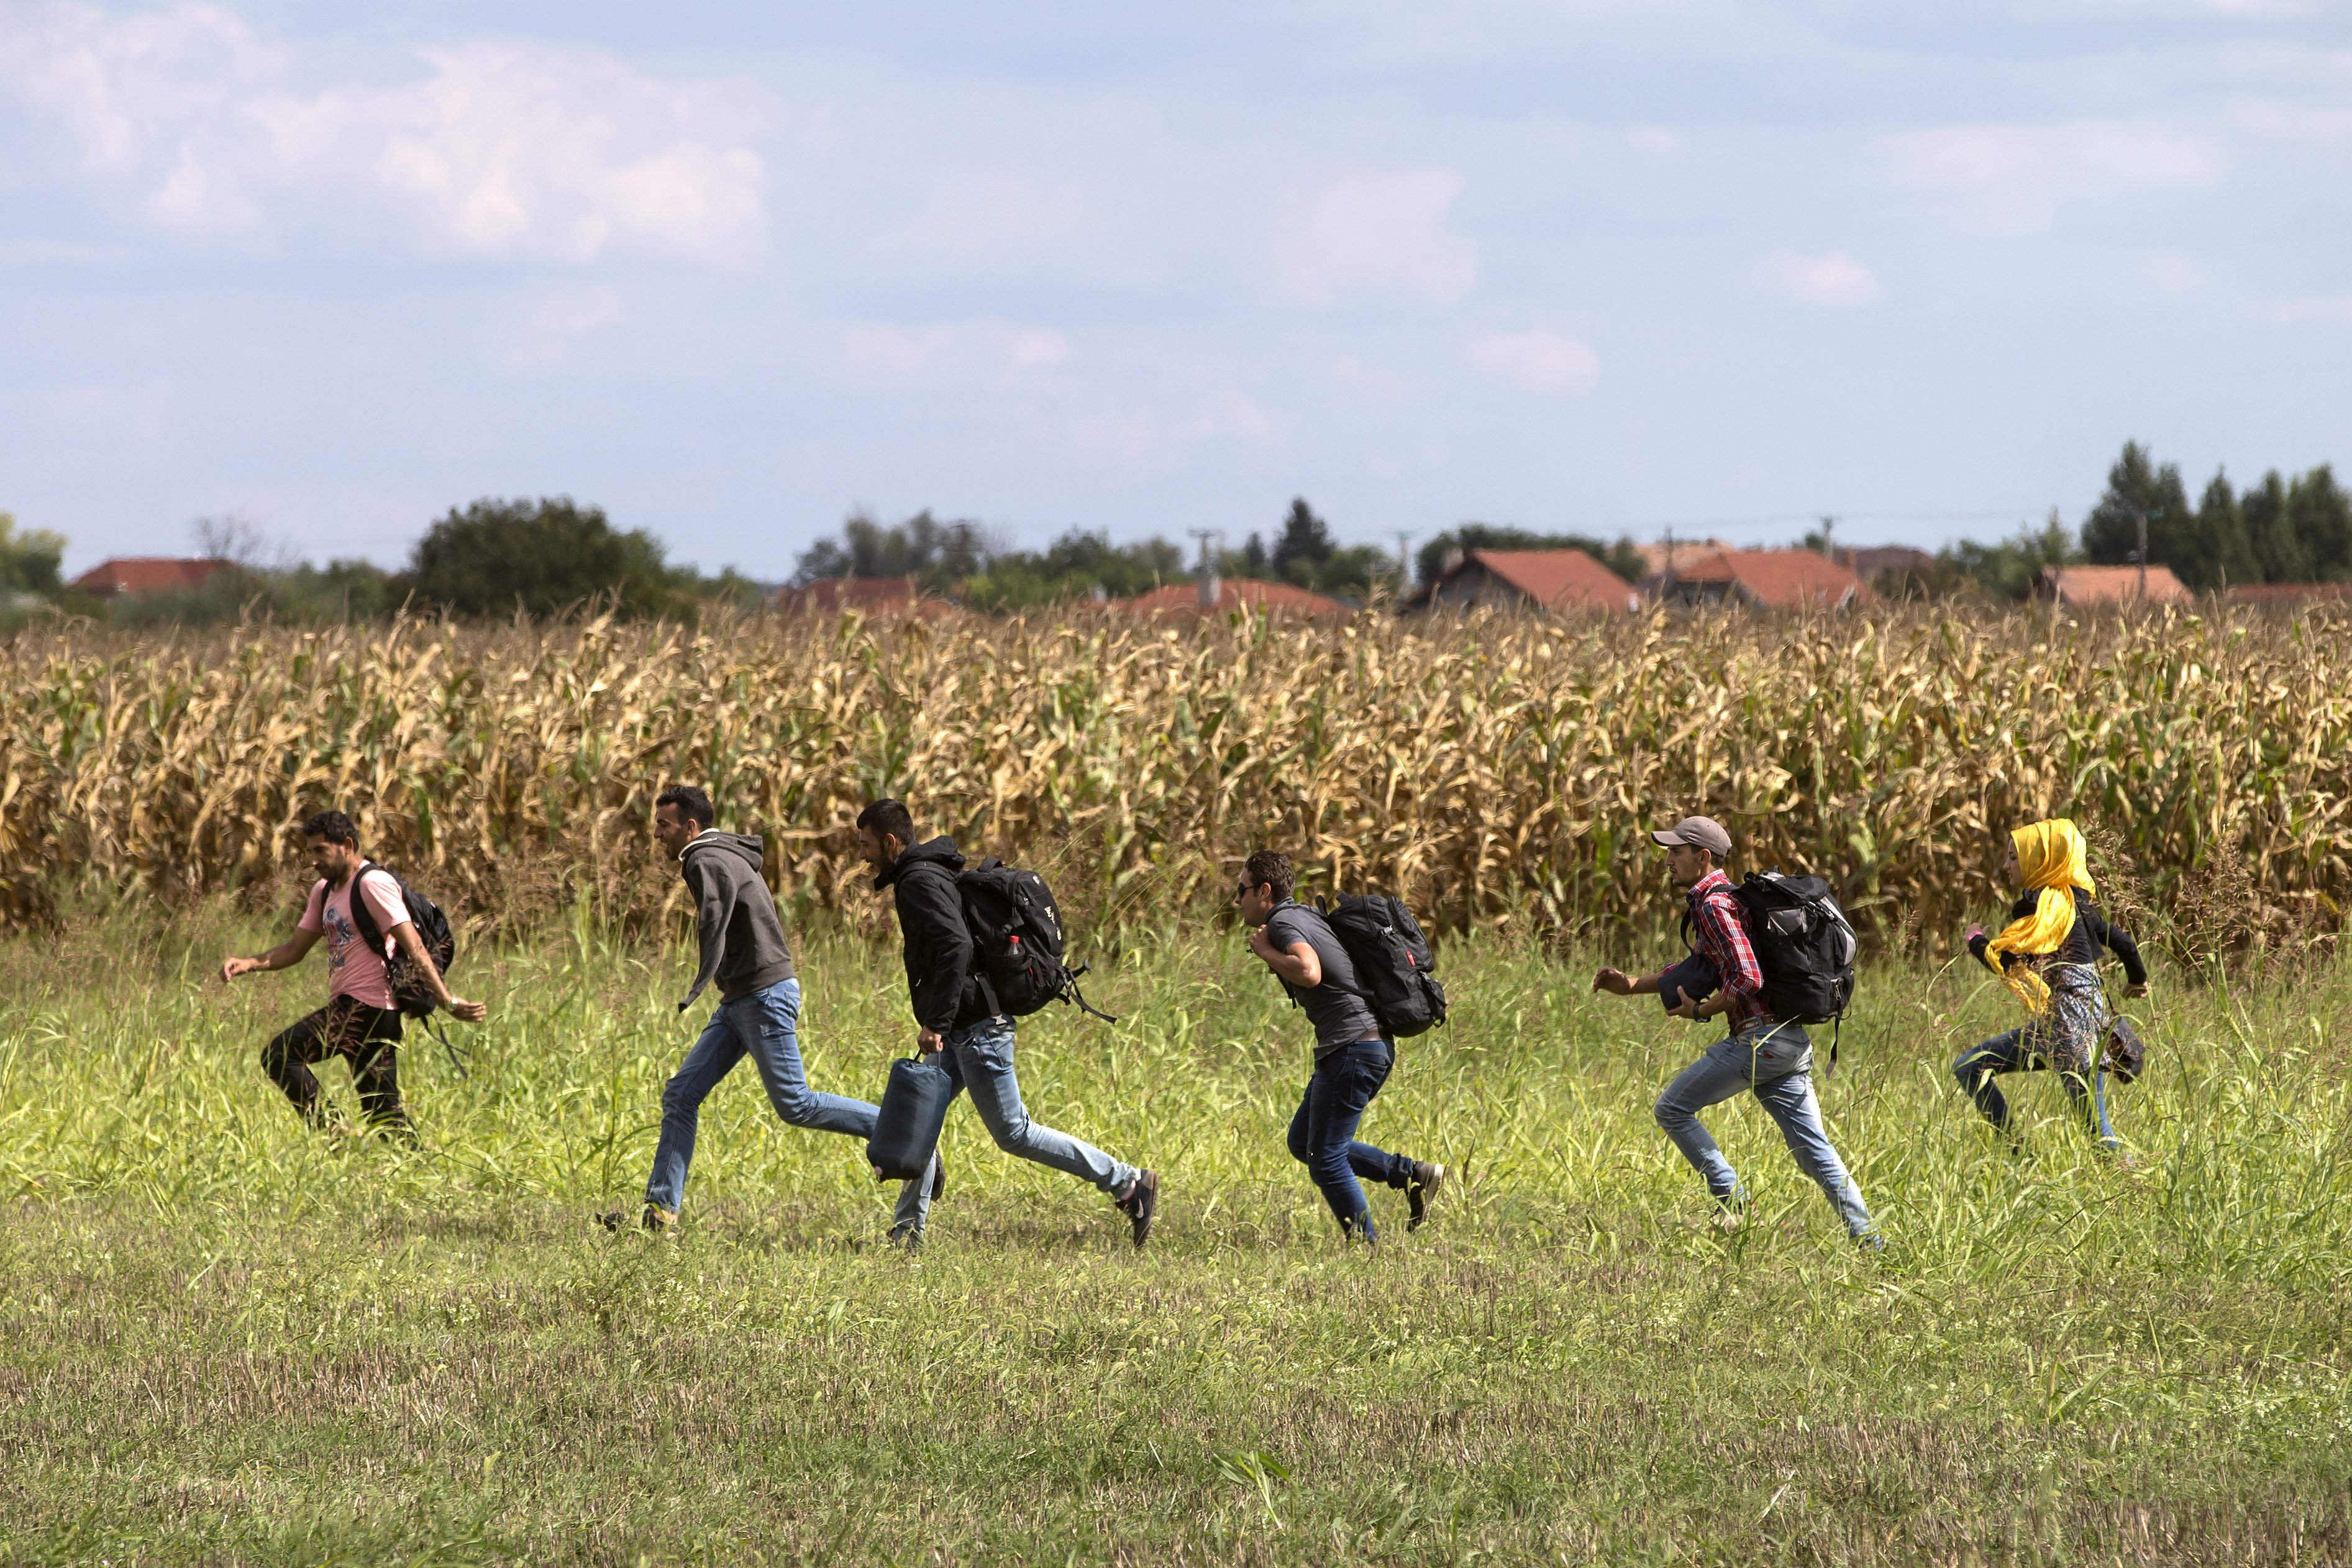 Migrants run from police as they escape from a collection point in Roszke village, Hungary.